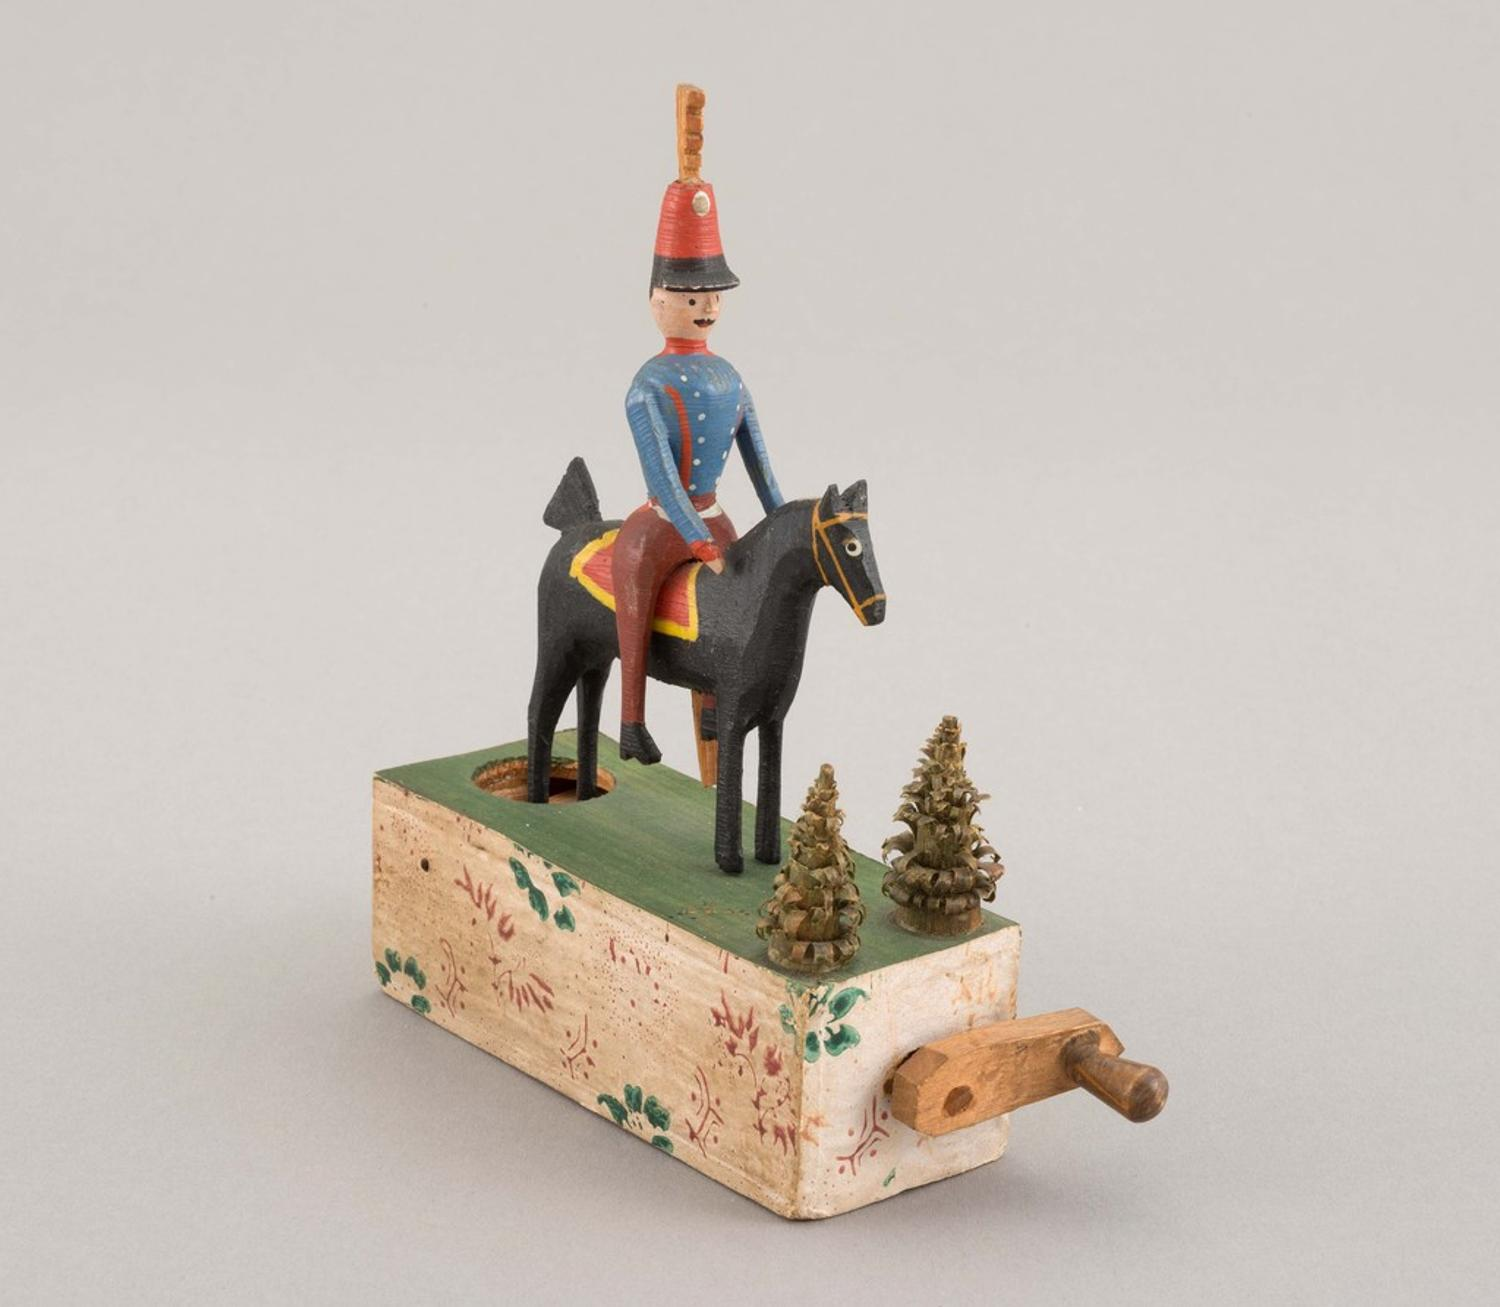 First Major Exhibition Of 19th Century Wooden Toys Made